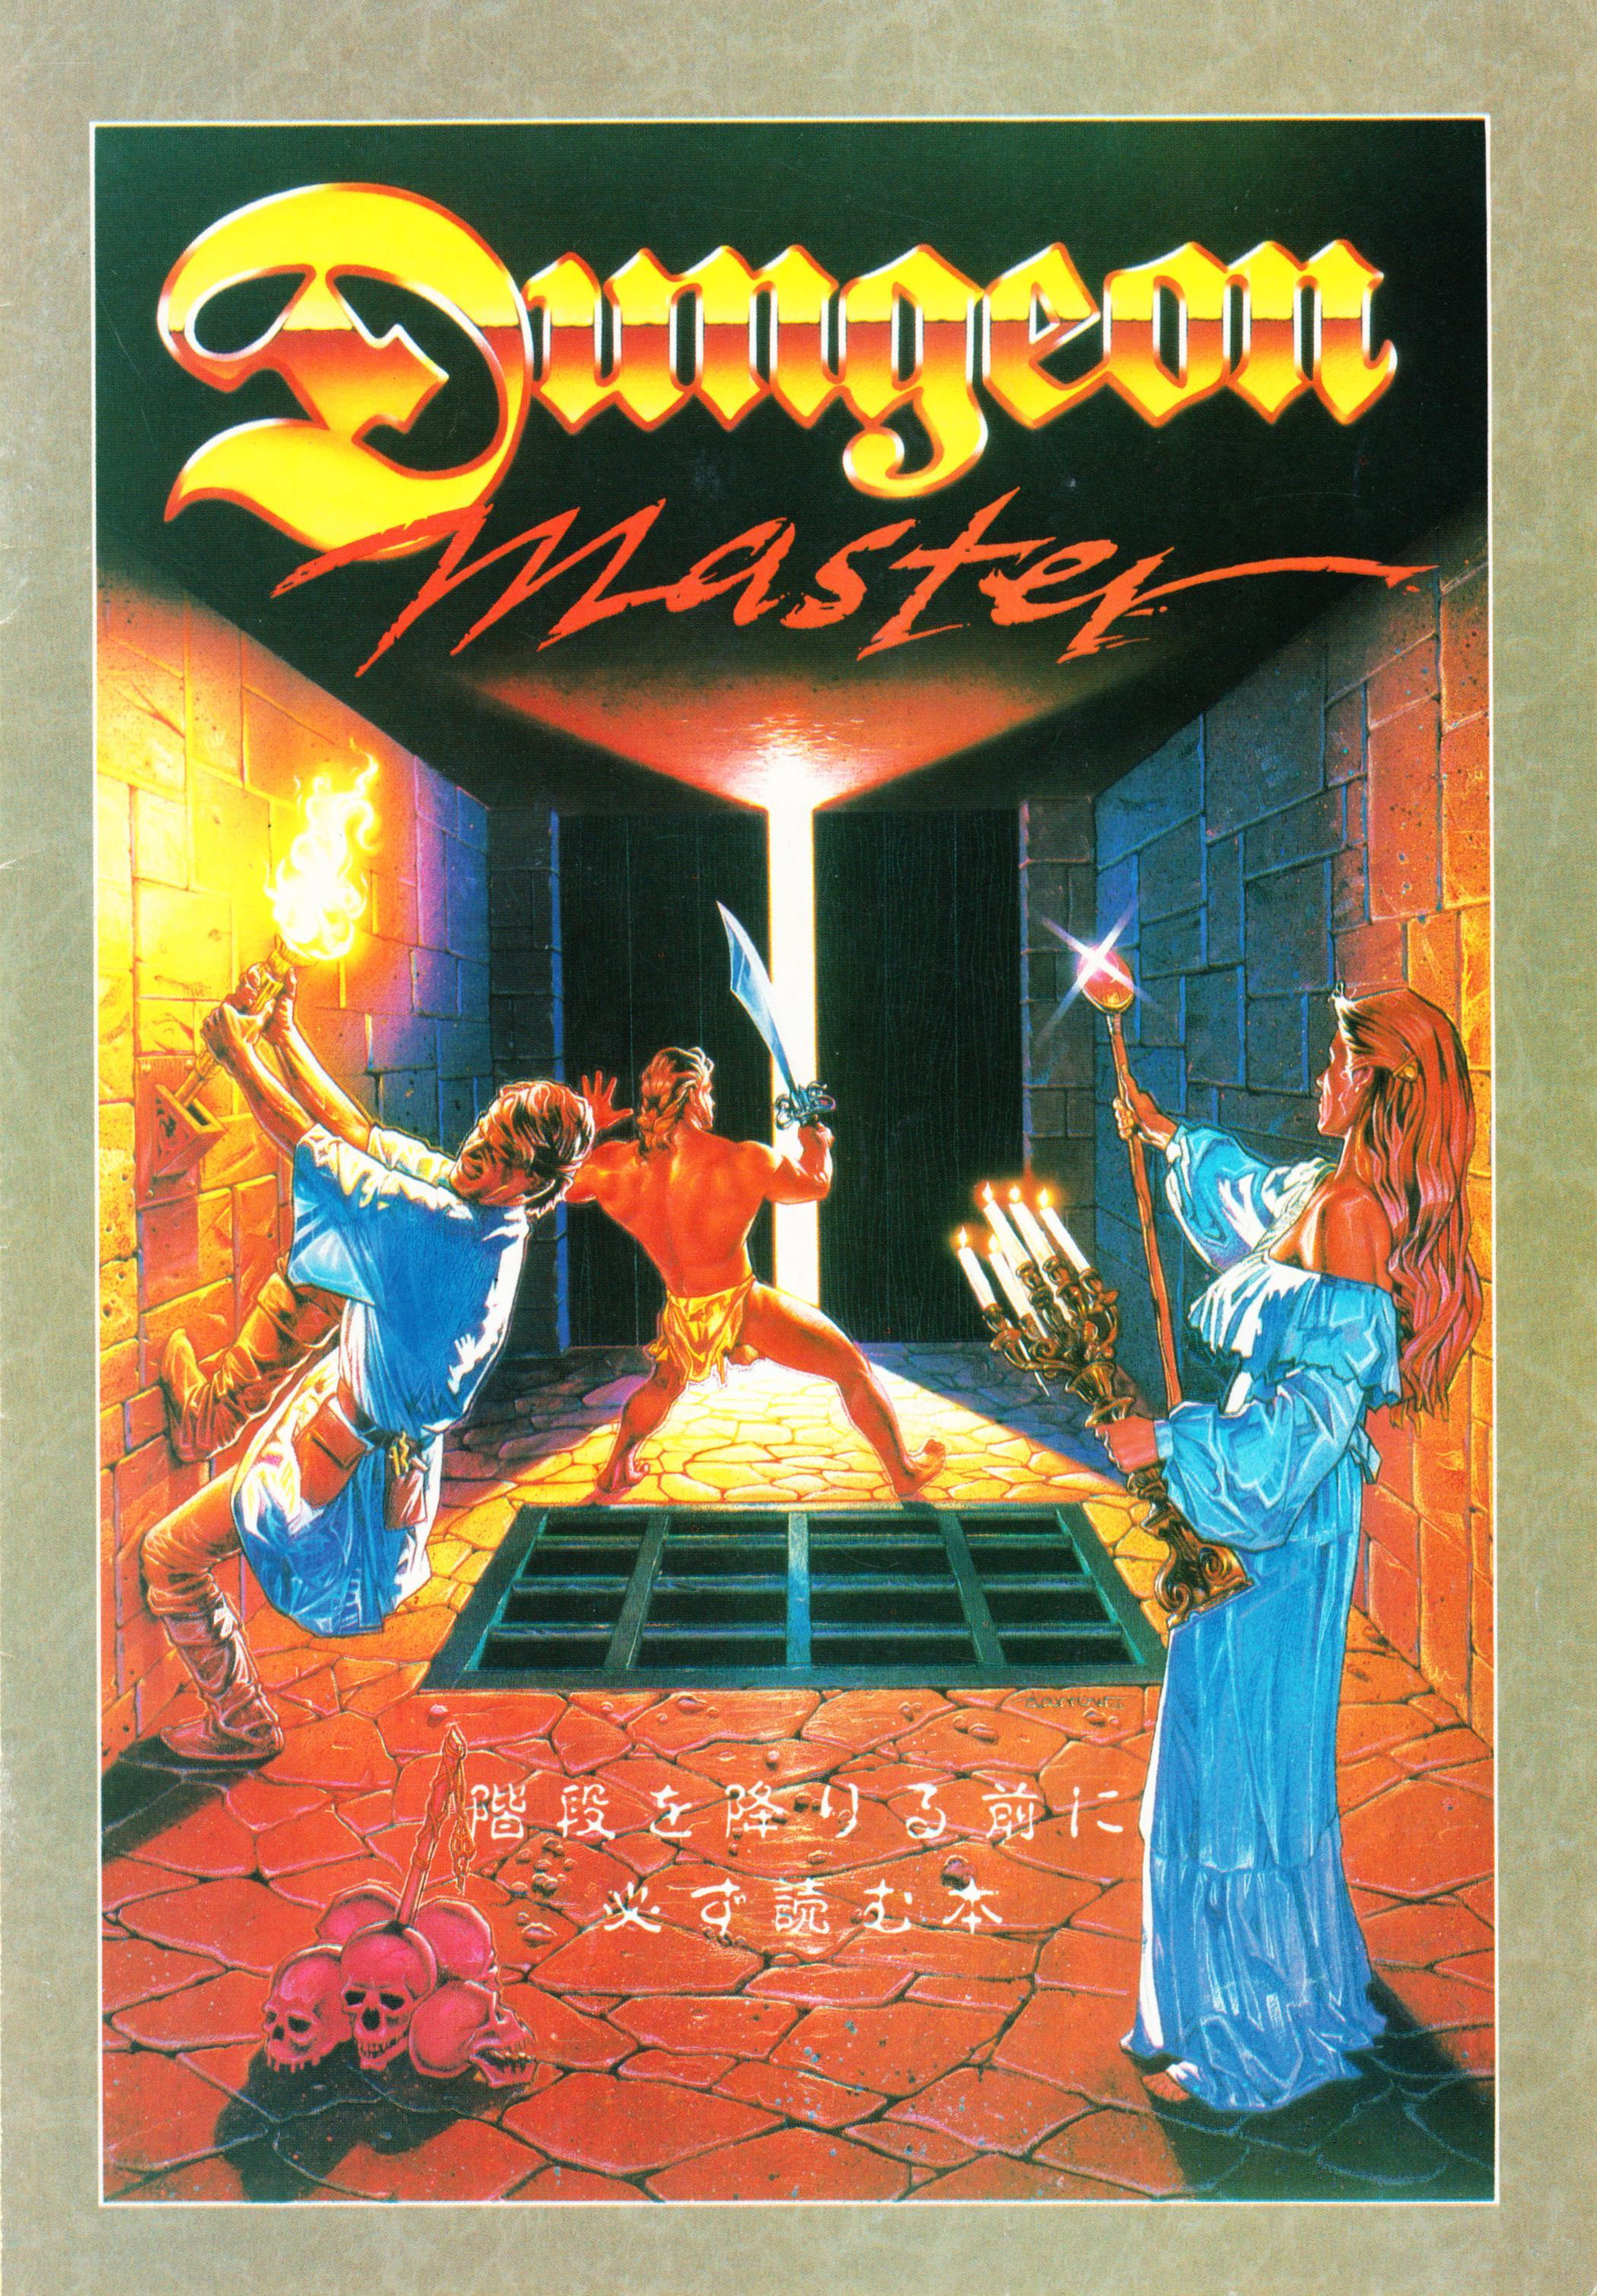 Special Supplement 2 - Dungeon Master Guide published in Japanese magazine 'Login', Vol 9 No 3 02 February 1990, Page 1